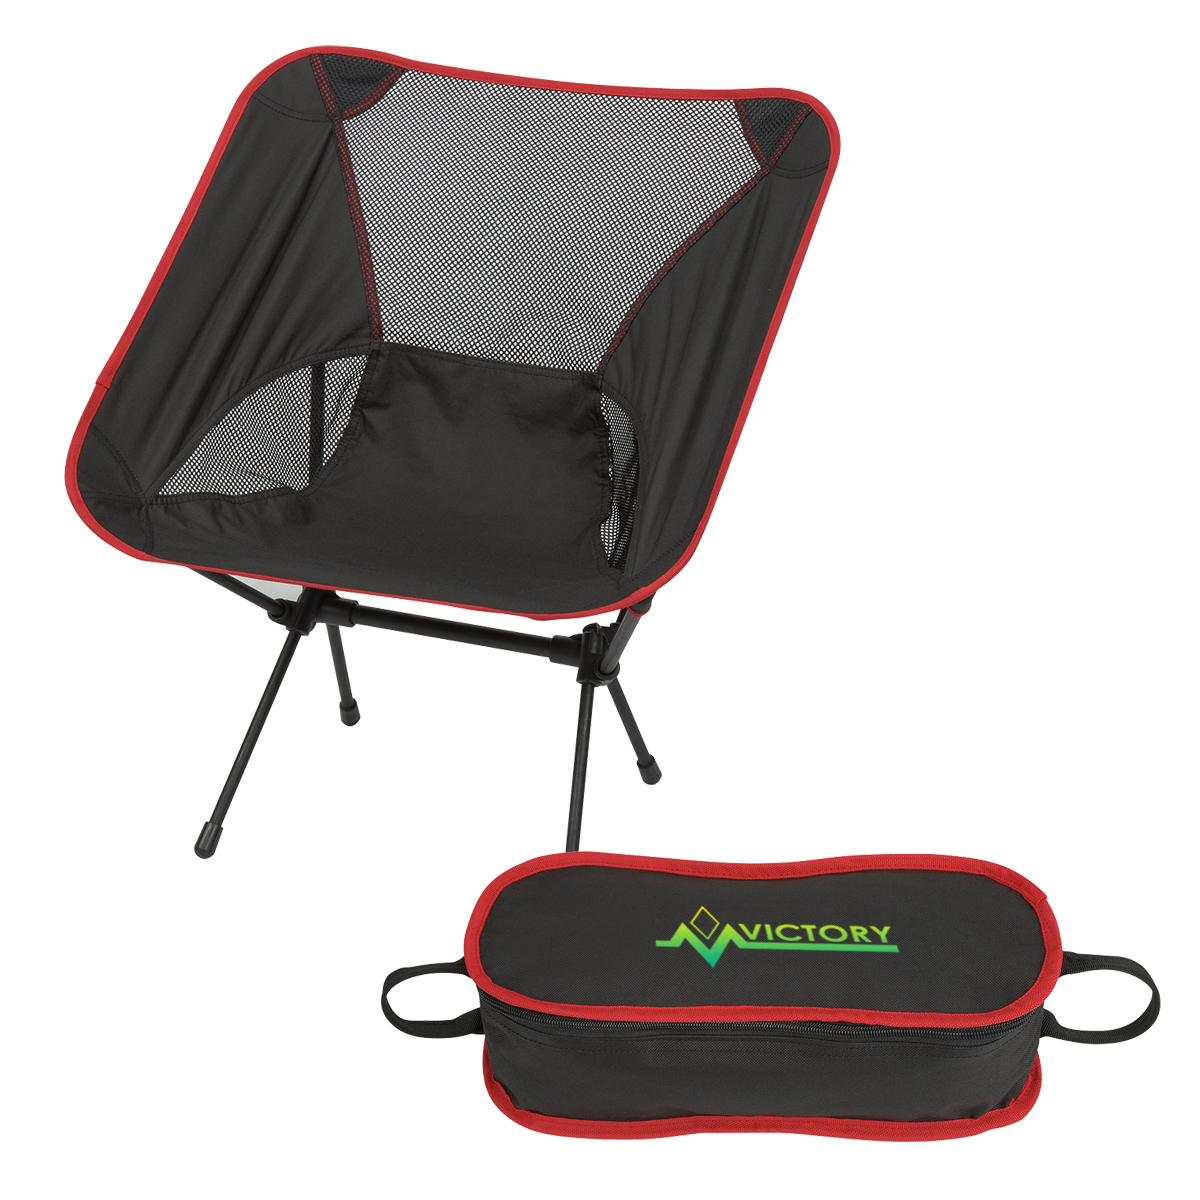 Victory Red Folding Chair with Travel Bag